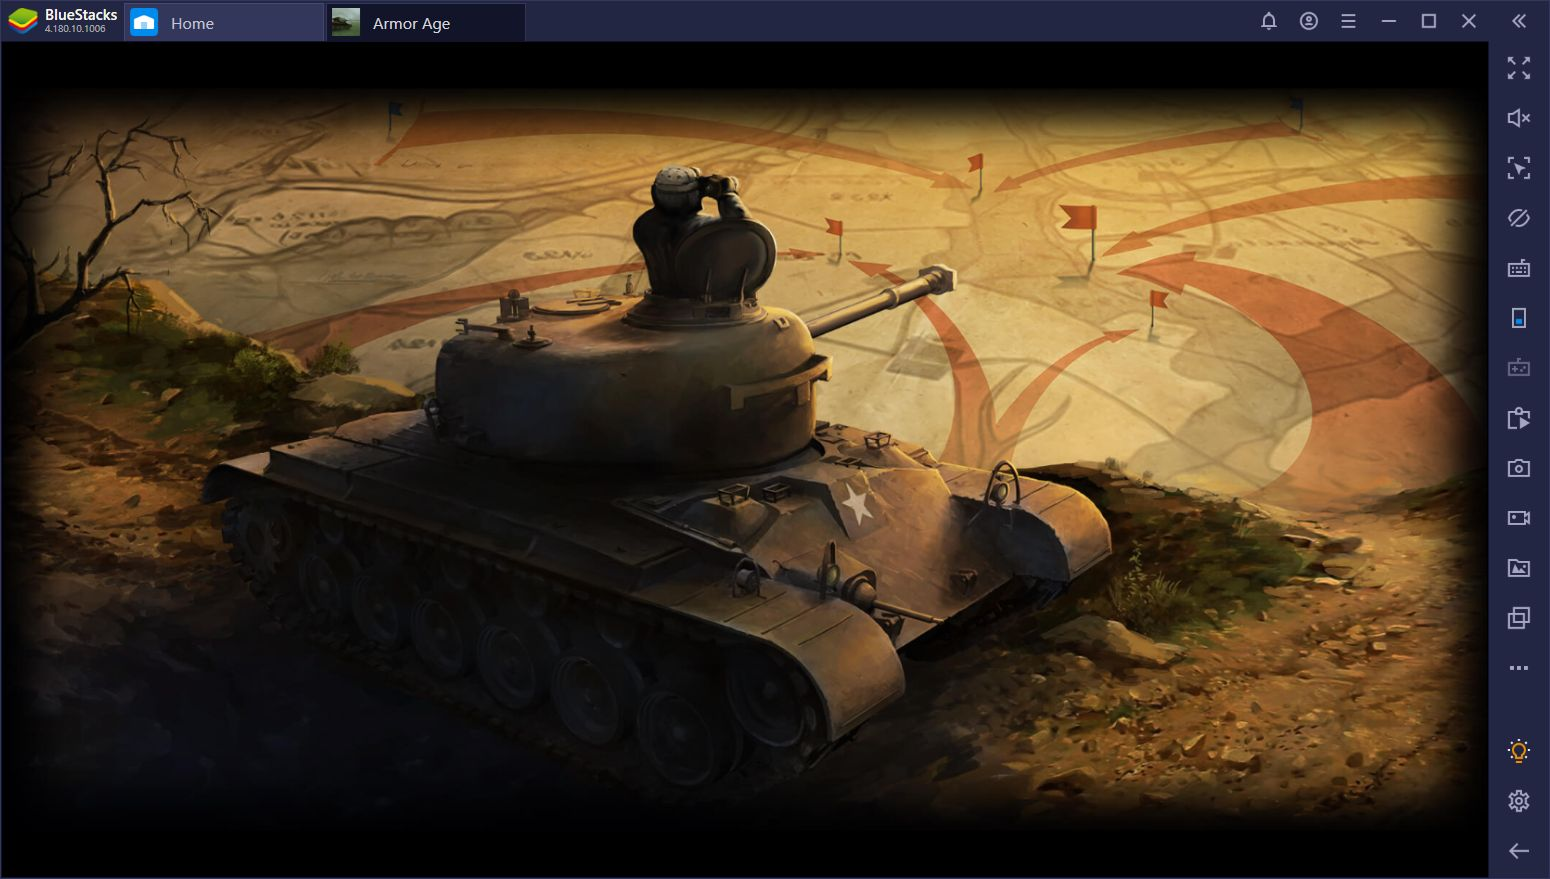 Beginner's Guide for Armor Age: Tank Wars on PC